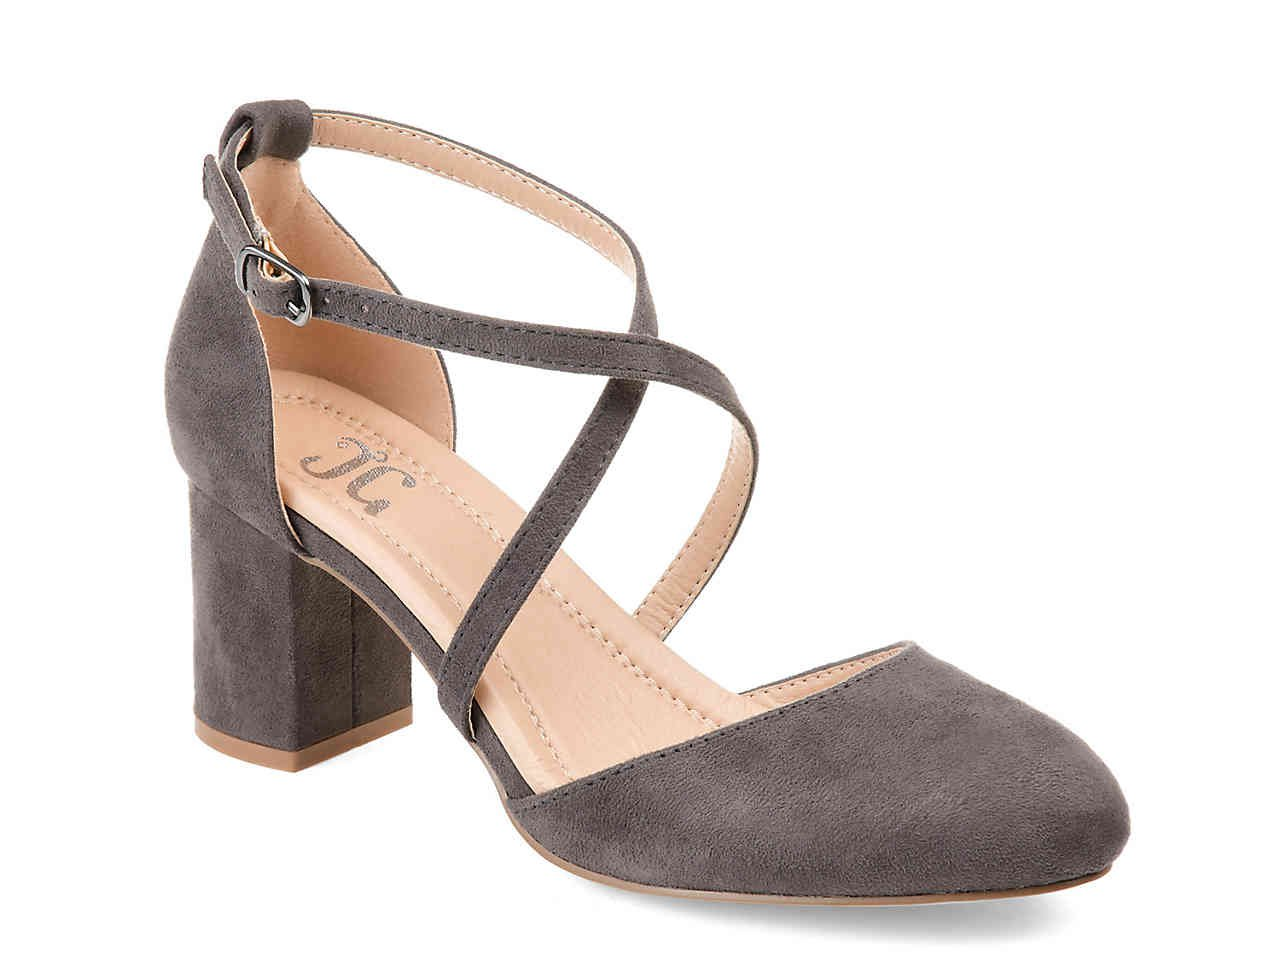 Journee Collection Foster Pump Women's Shoes | DSW